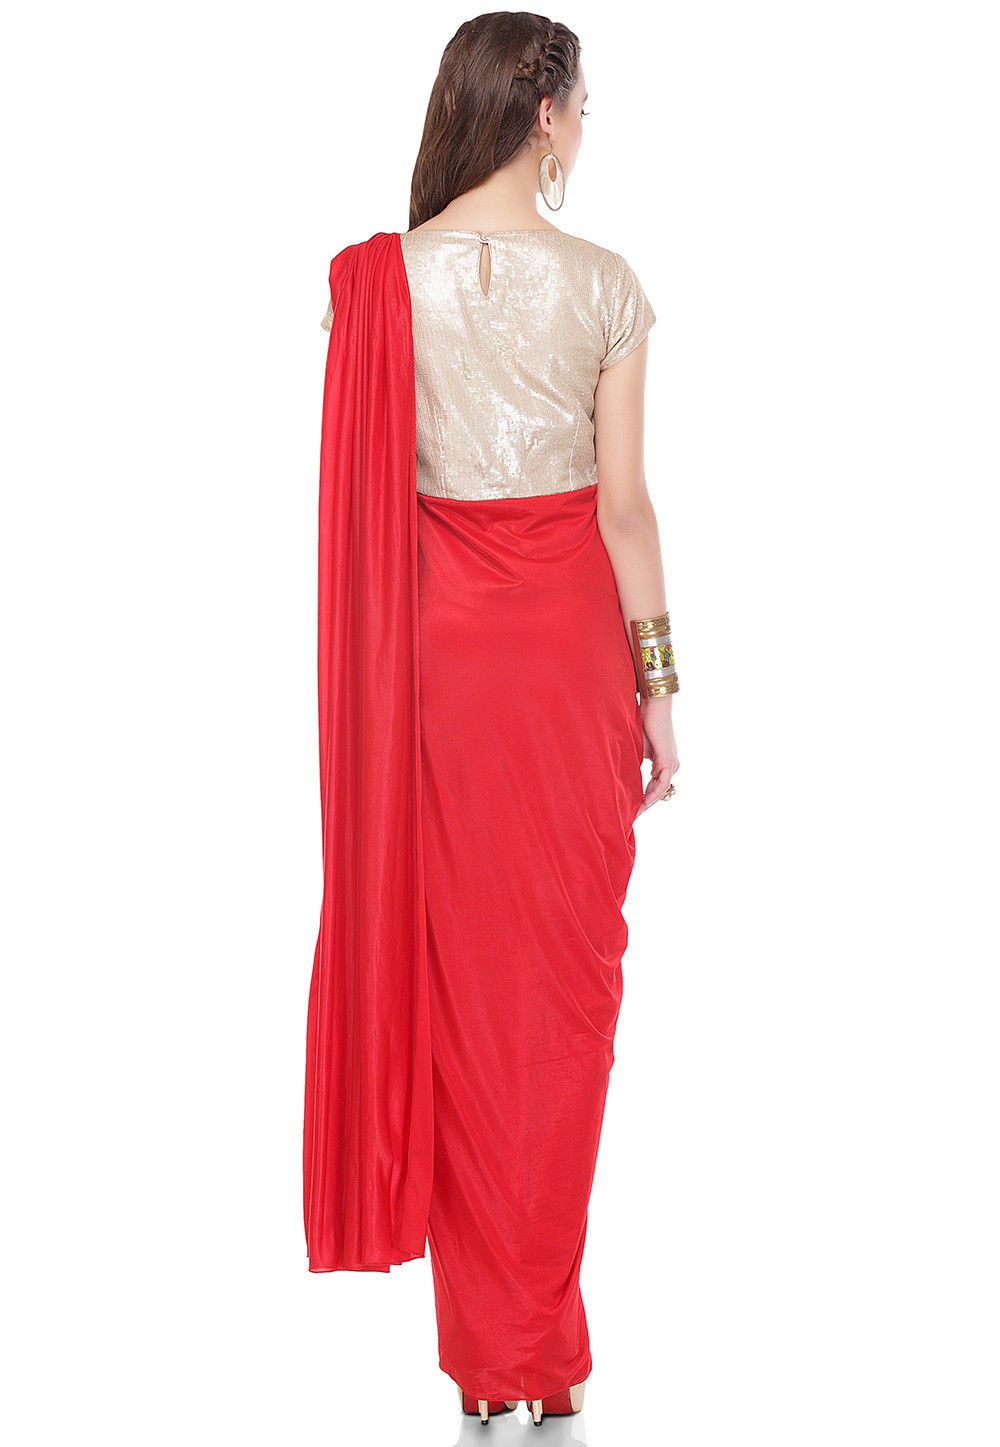 36070d496baaf Sequins Embroidered Lycra Draping Dress in Red and Golden. Zoom. View  Similar